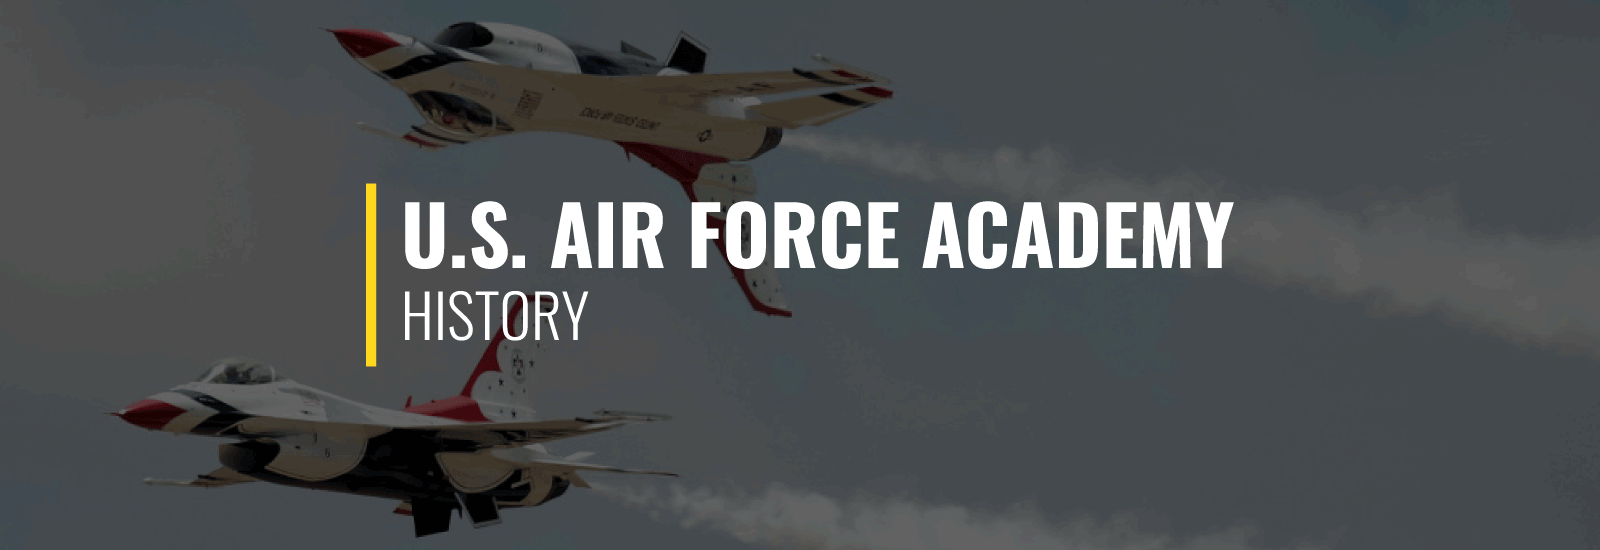 Air Force Academy History